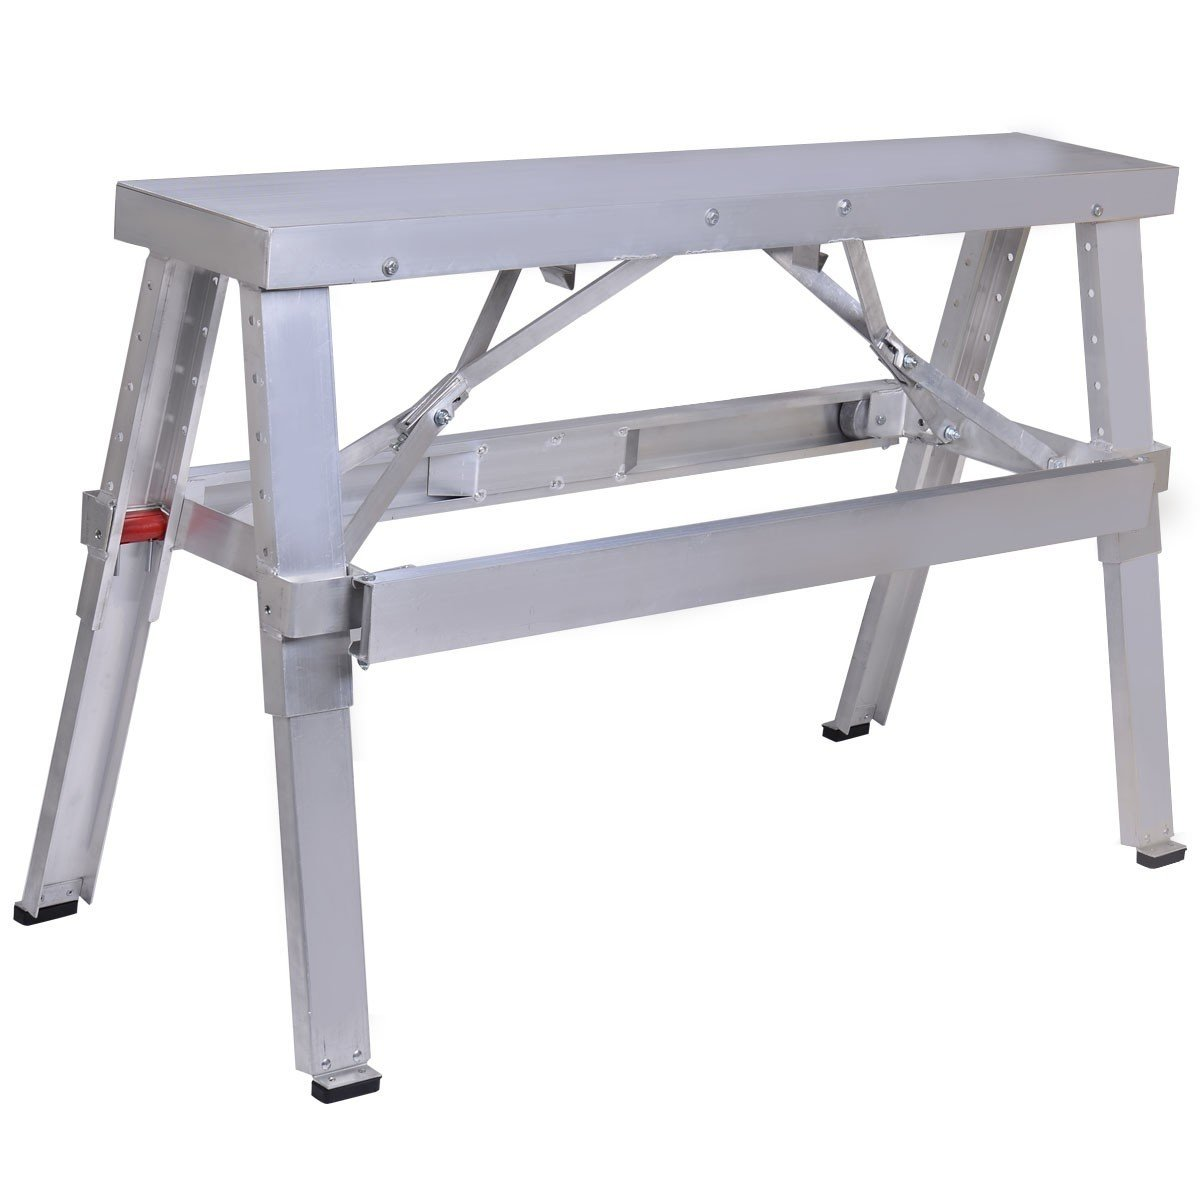 Apontus Adjustable Height Drywall Taping & Finishing Walk-Up Bench: 18 in. - 30 in. by Apontus